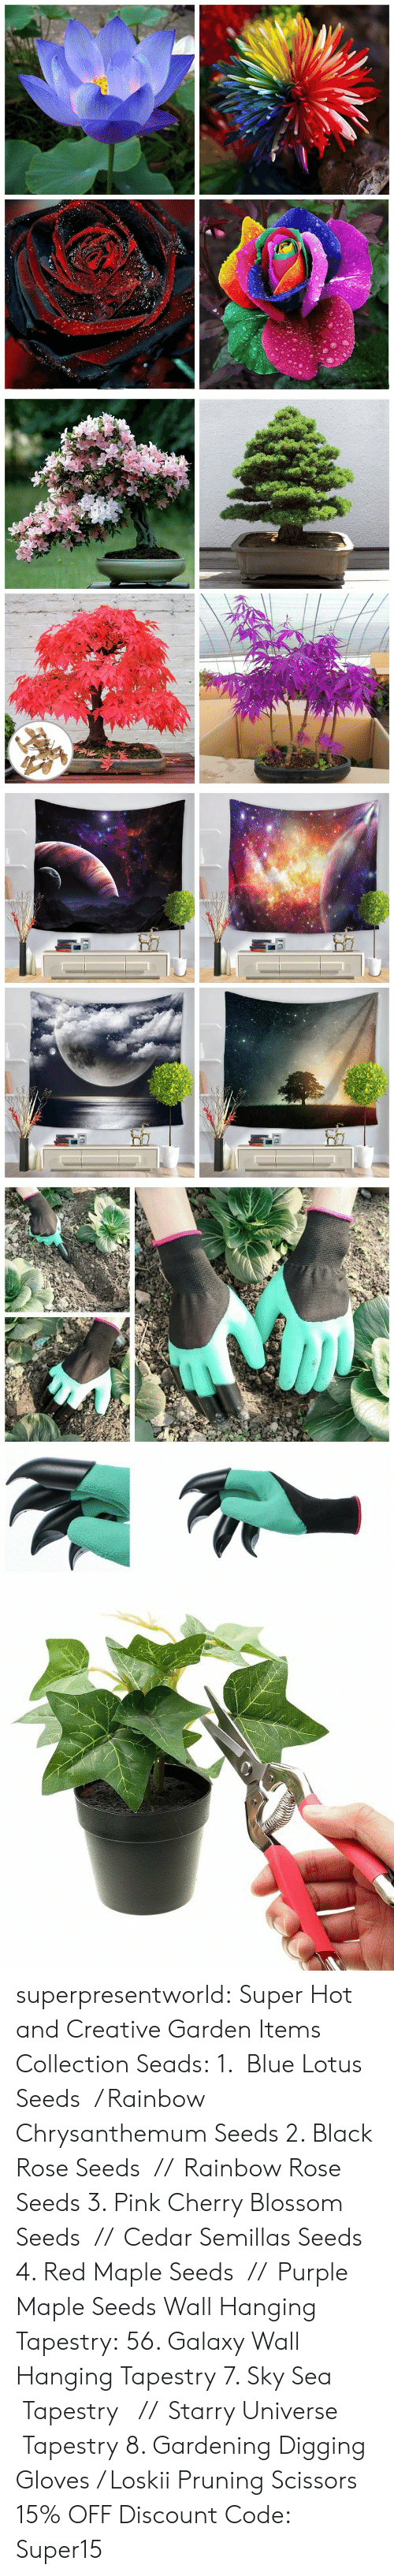 Gardening: superpresentworld: Super Hot and Creative Garden Items Collection Seads: 1. Blue Lotus Seeds / Rainbow Chrysanthemum Seeds  2. Black Rose Seeds // Rainbow Rose Seeds  3. Pink Cherry Blossom Seeds // Cedar Semillas Seeds  4. Red Maple Seeds // Purple Maple Seeds  Wall Hanging Tapestry: 56. Galaxy Wall Hanging Tapestry  7. Sky Sea Tapestry  // Starry Universe Tapestry  8. Gardening Digging Gloves / Loskii Pruning Scissors  15% OFF Discount Code: Super15